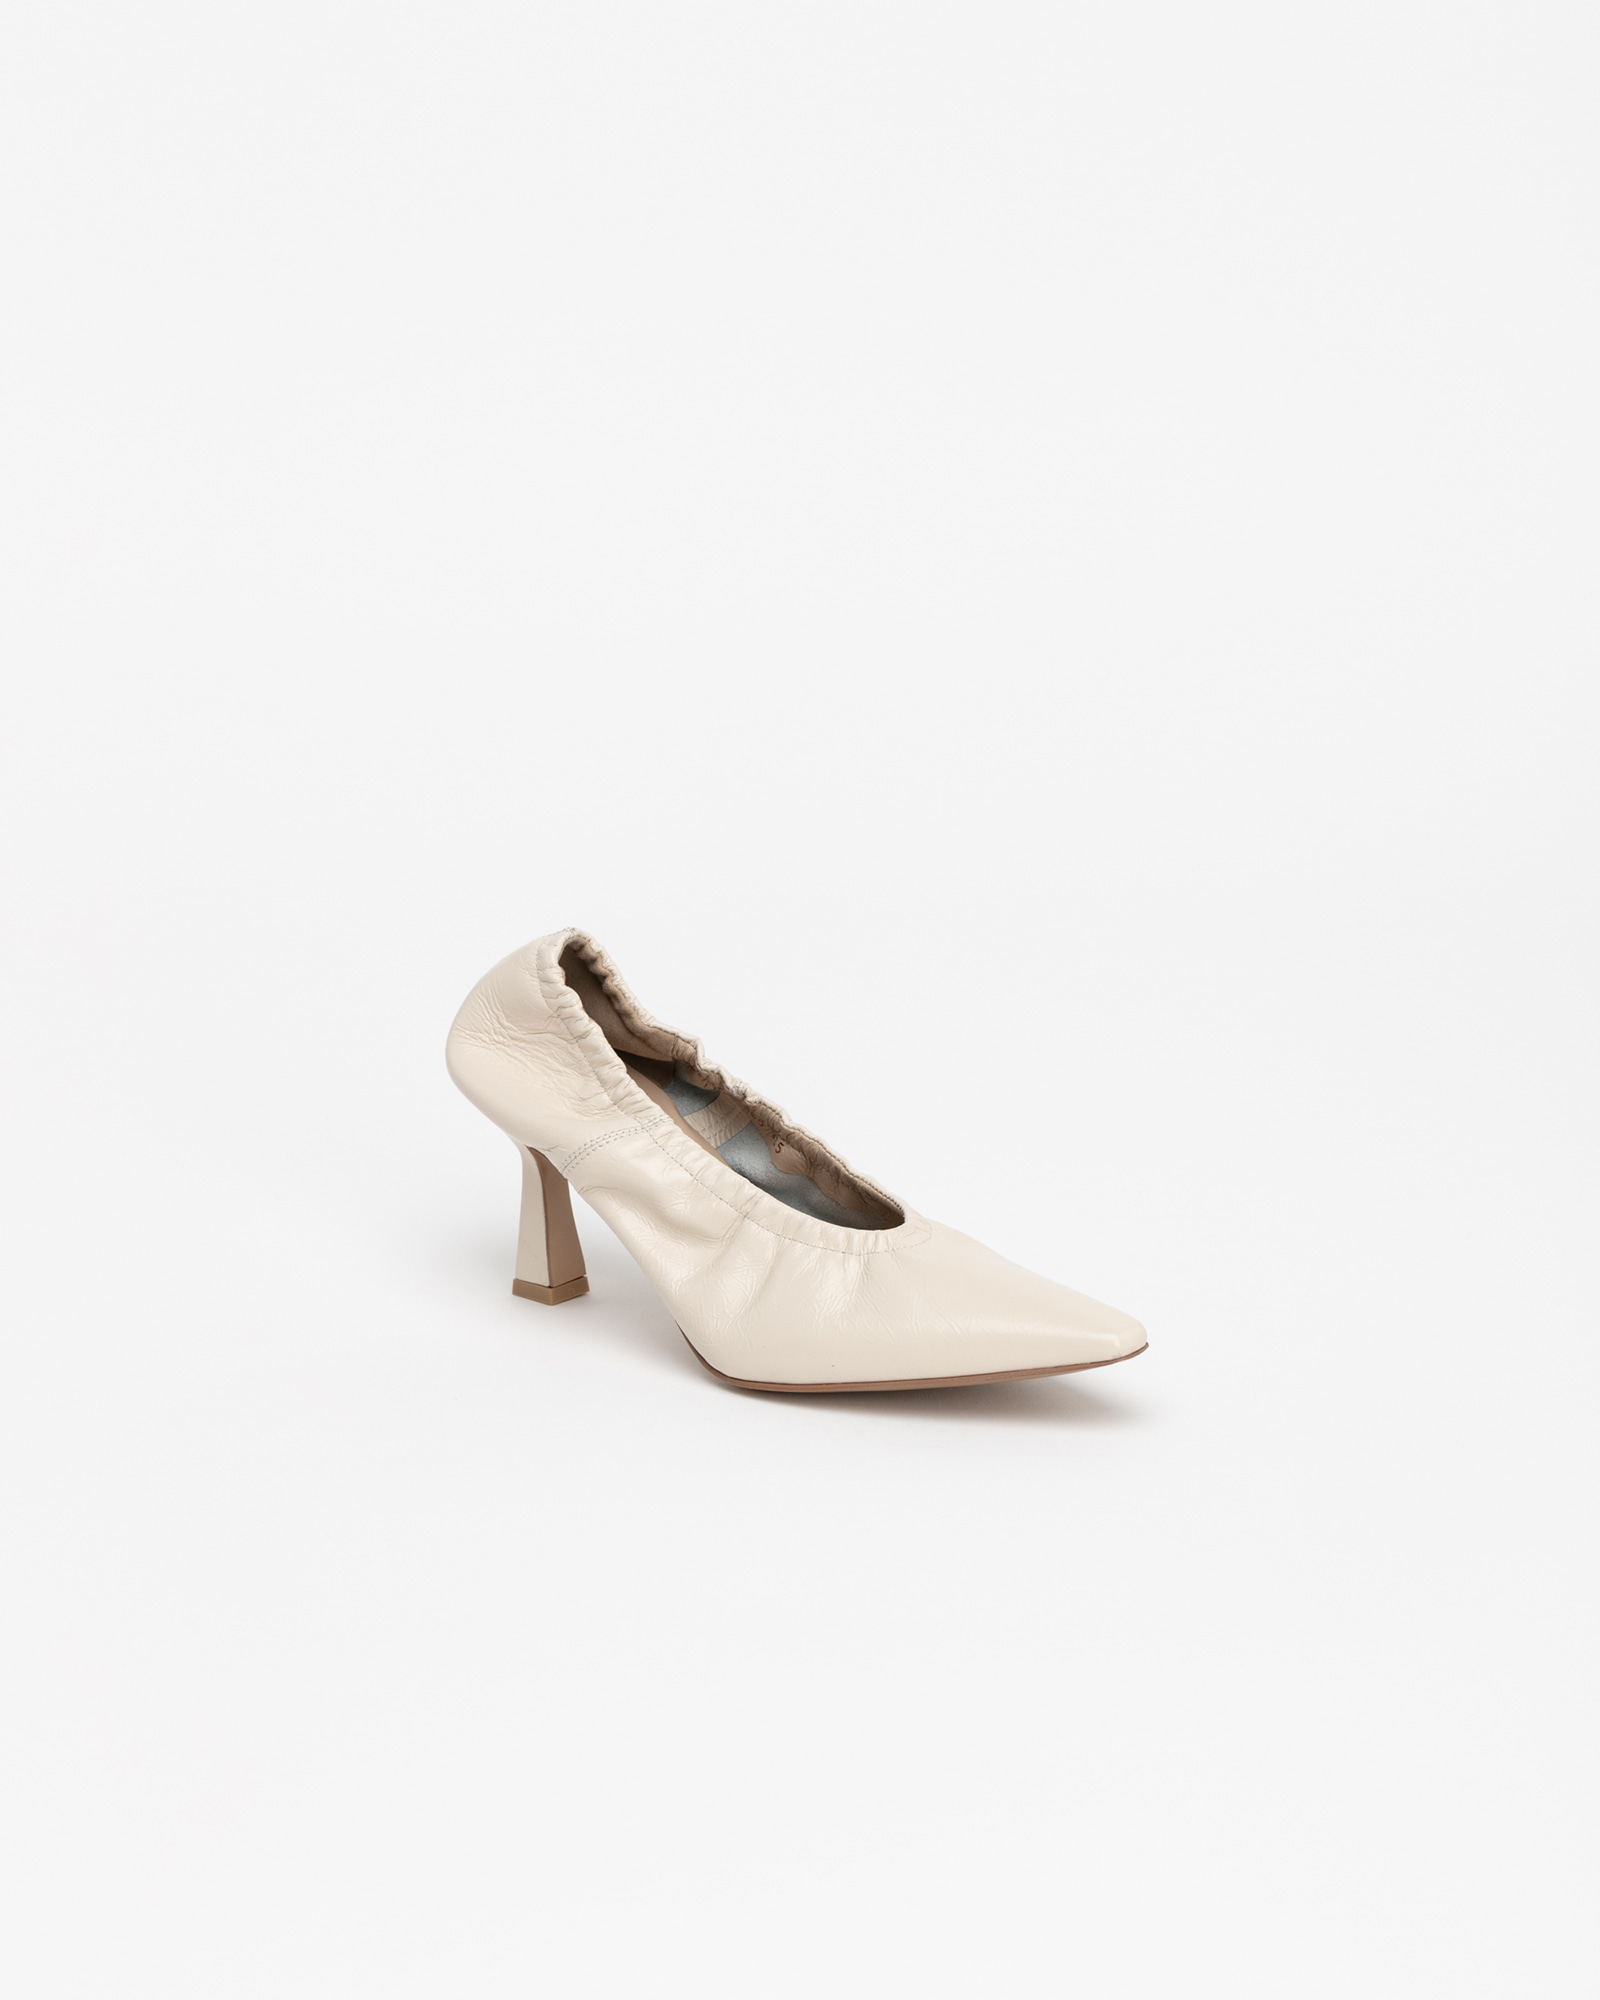 Arnaud Soft Pumps in Wrinkled Ivory